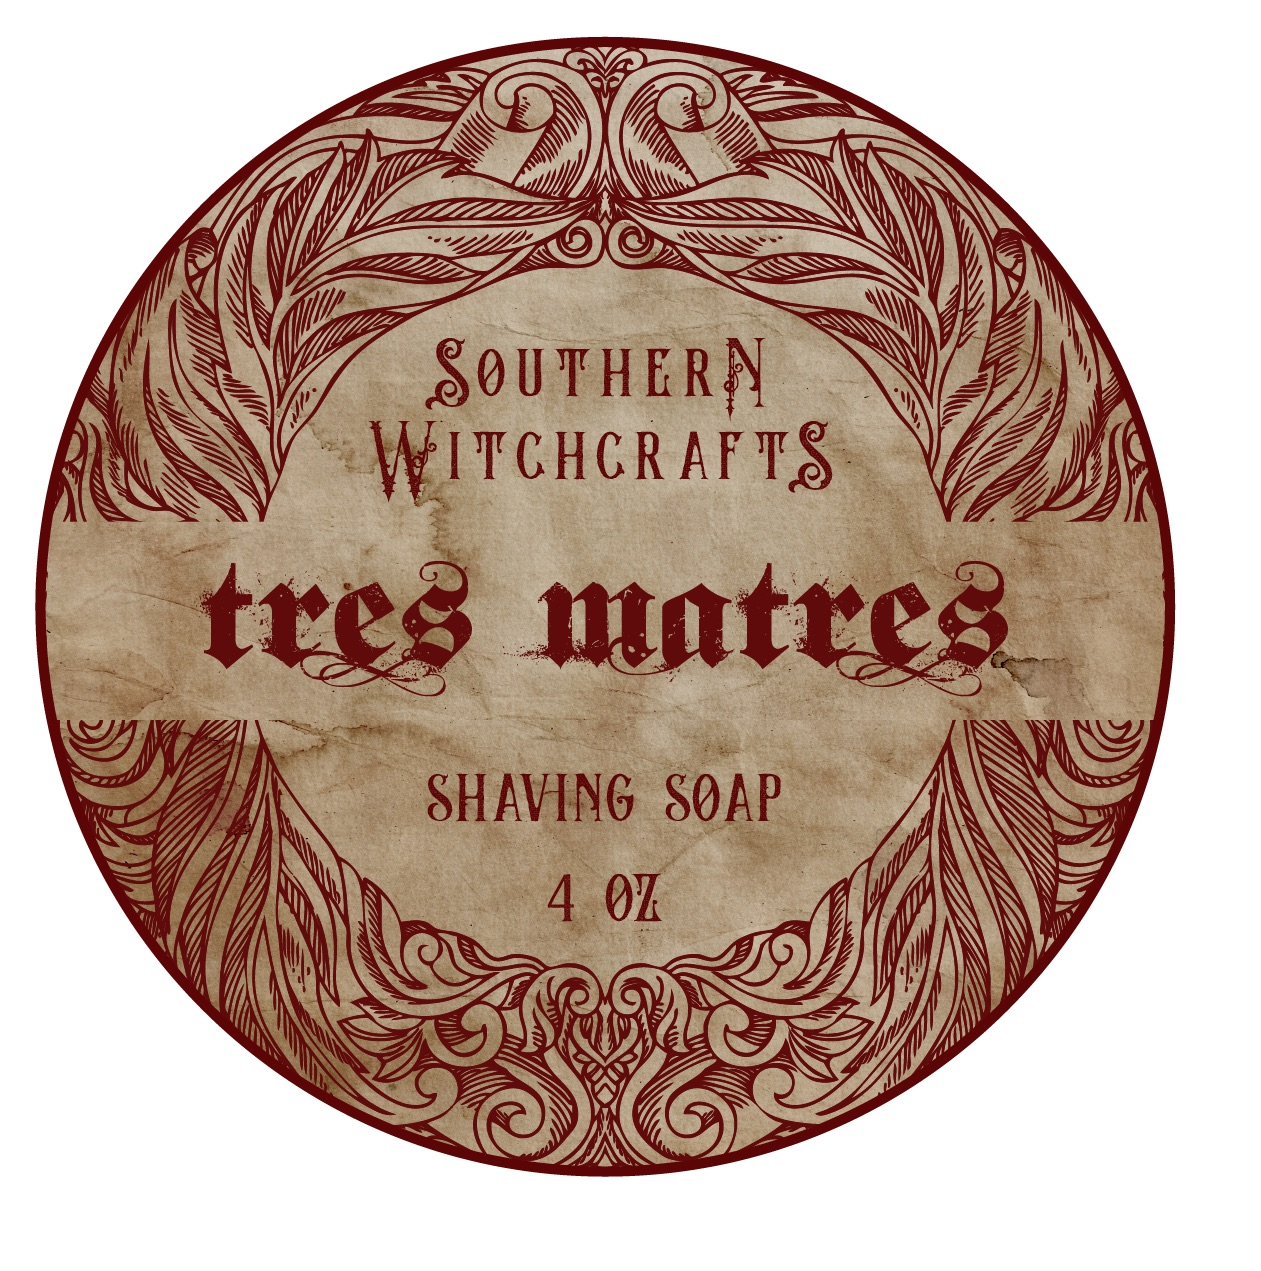 Southern Witchcrafts - Tres Matres - Soap (Vegan) image